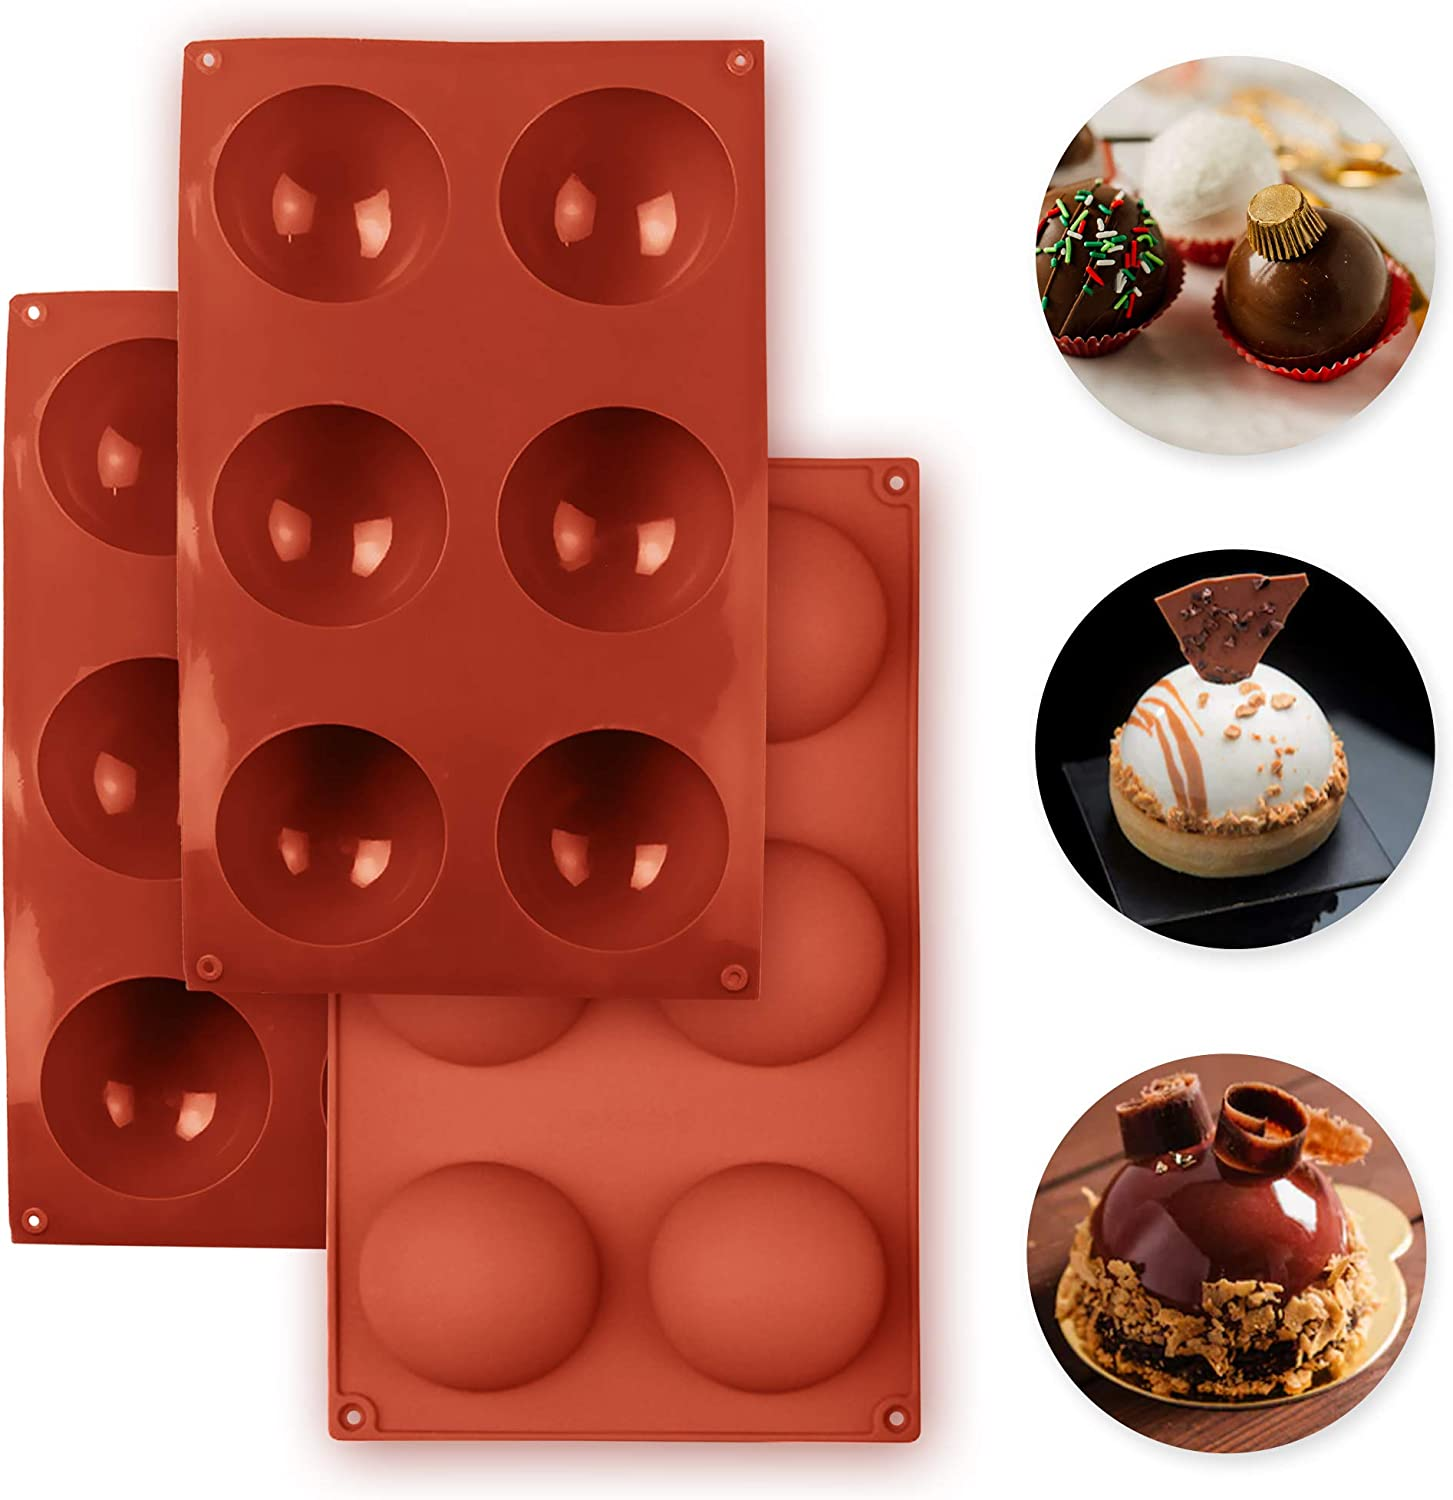 Funcook 6 Hole Silicone Sphere Mold for Chocolate Bombs, Candy, Mousse, and Baked Goods, Half Sphere Heat Resistant Baking Molds, Flexible and Reusable, 3 Pack